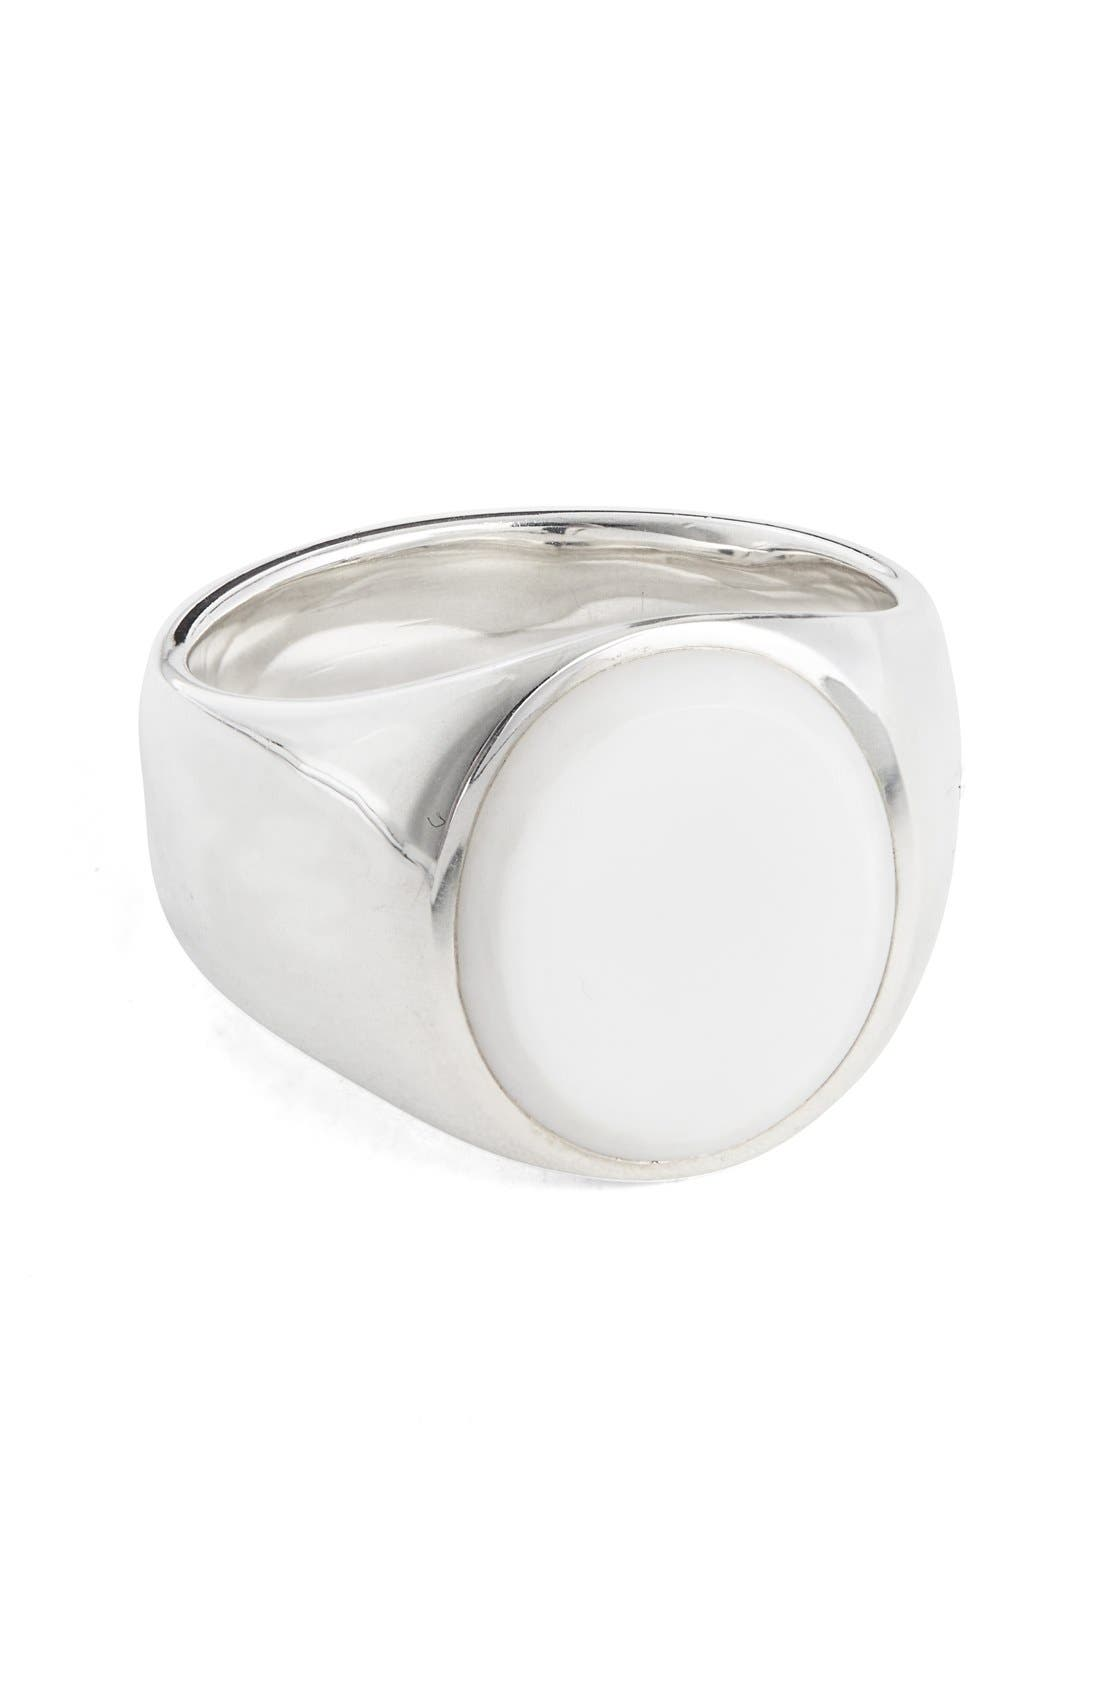 Main Image - Tom Wood 'Patriot Collection' Oval White Agate Signet Ring